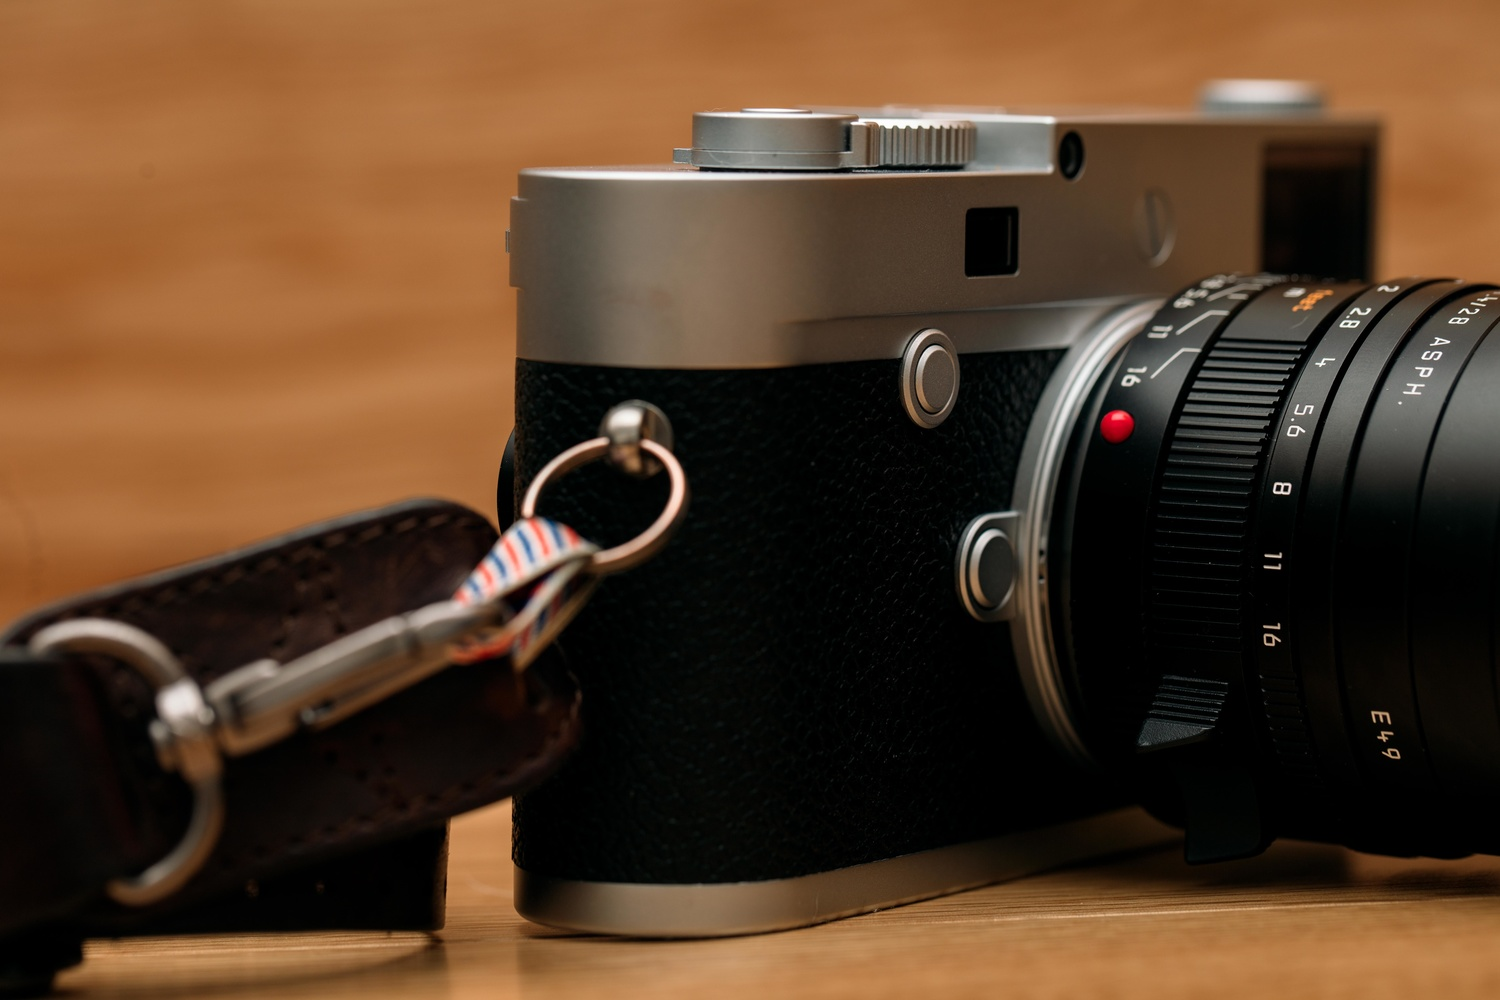 Fstoppers Reviews the Leica M10-P: Falling in Love Is Easy | Fstoppers